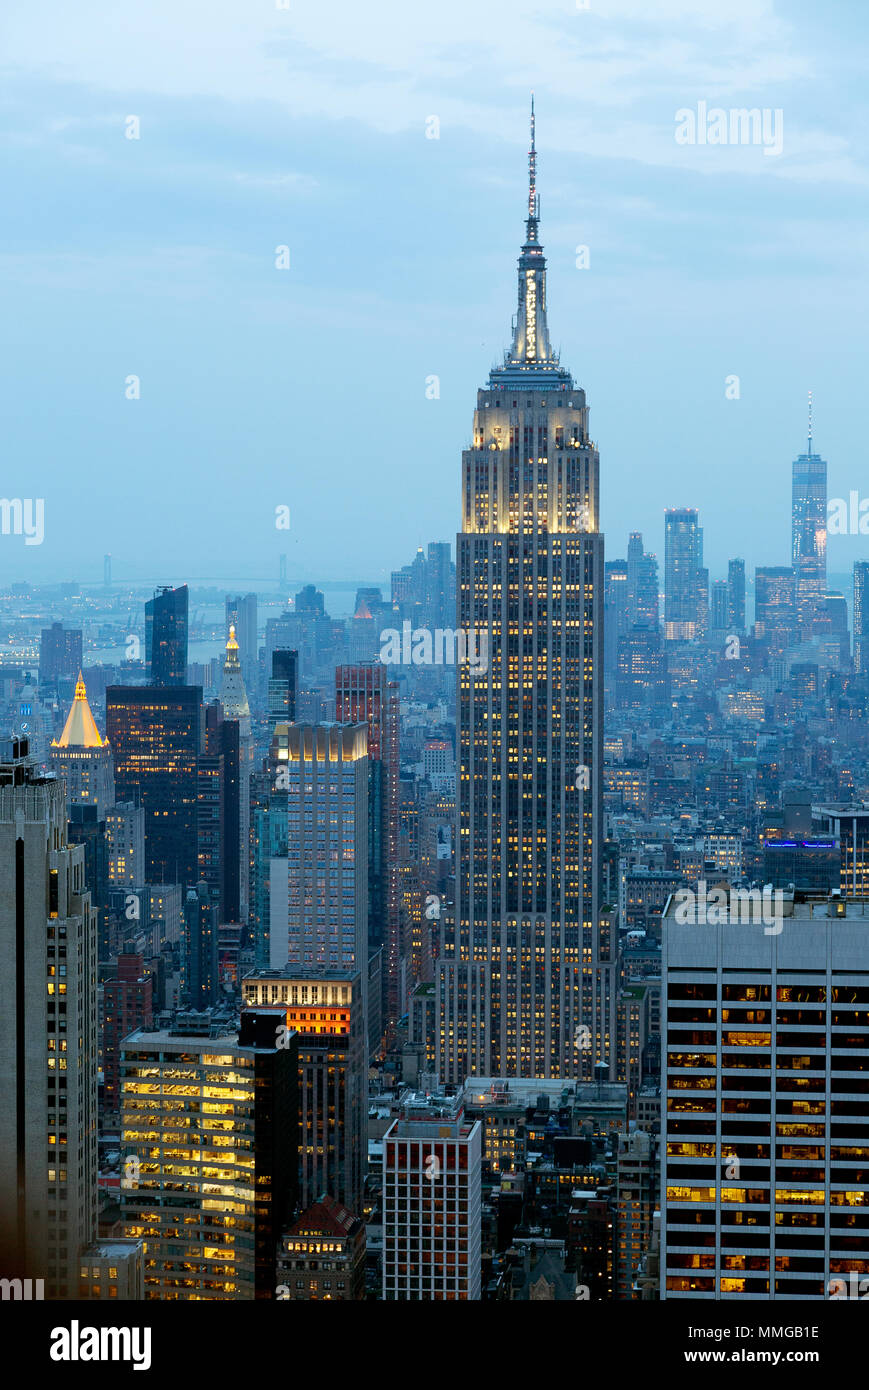 The Empire State Building and New York skyline in the evening seen from the Top of the Rock, New York city United States of America - Stock Image